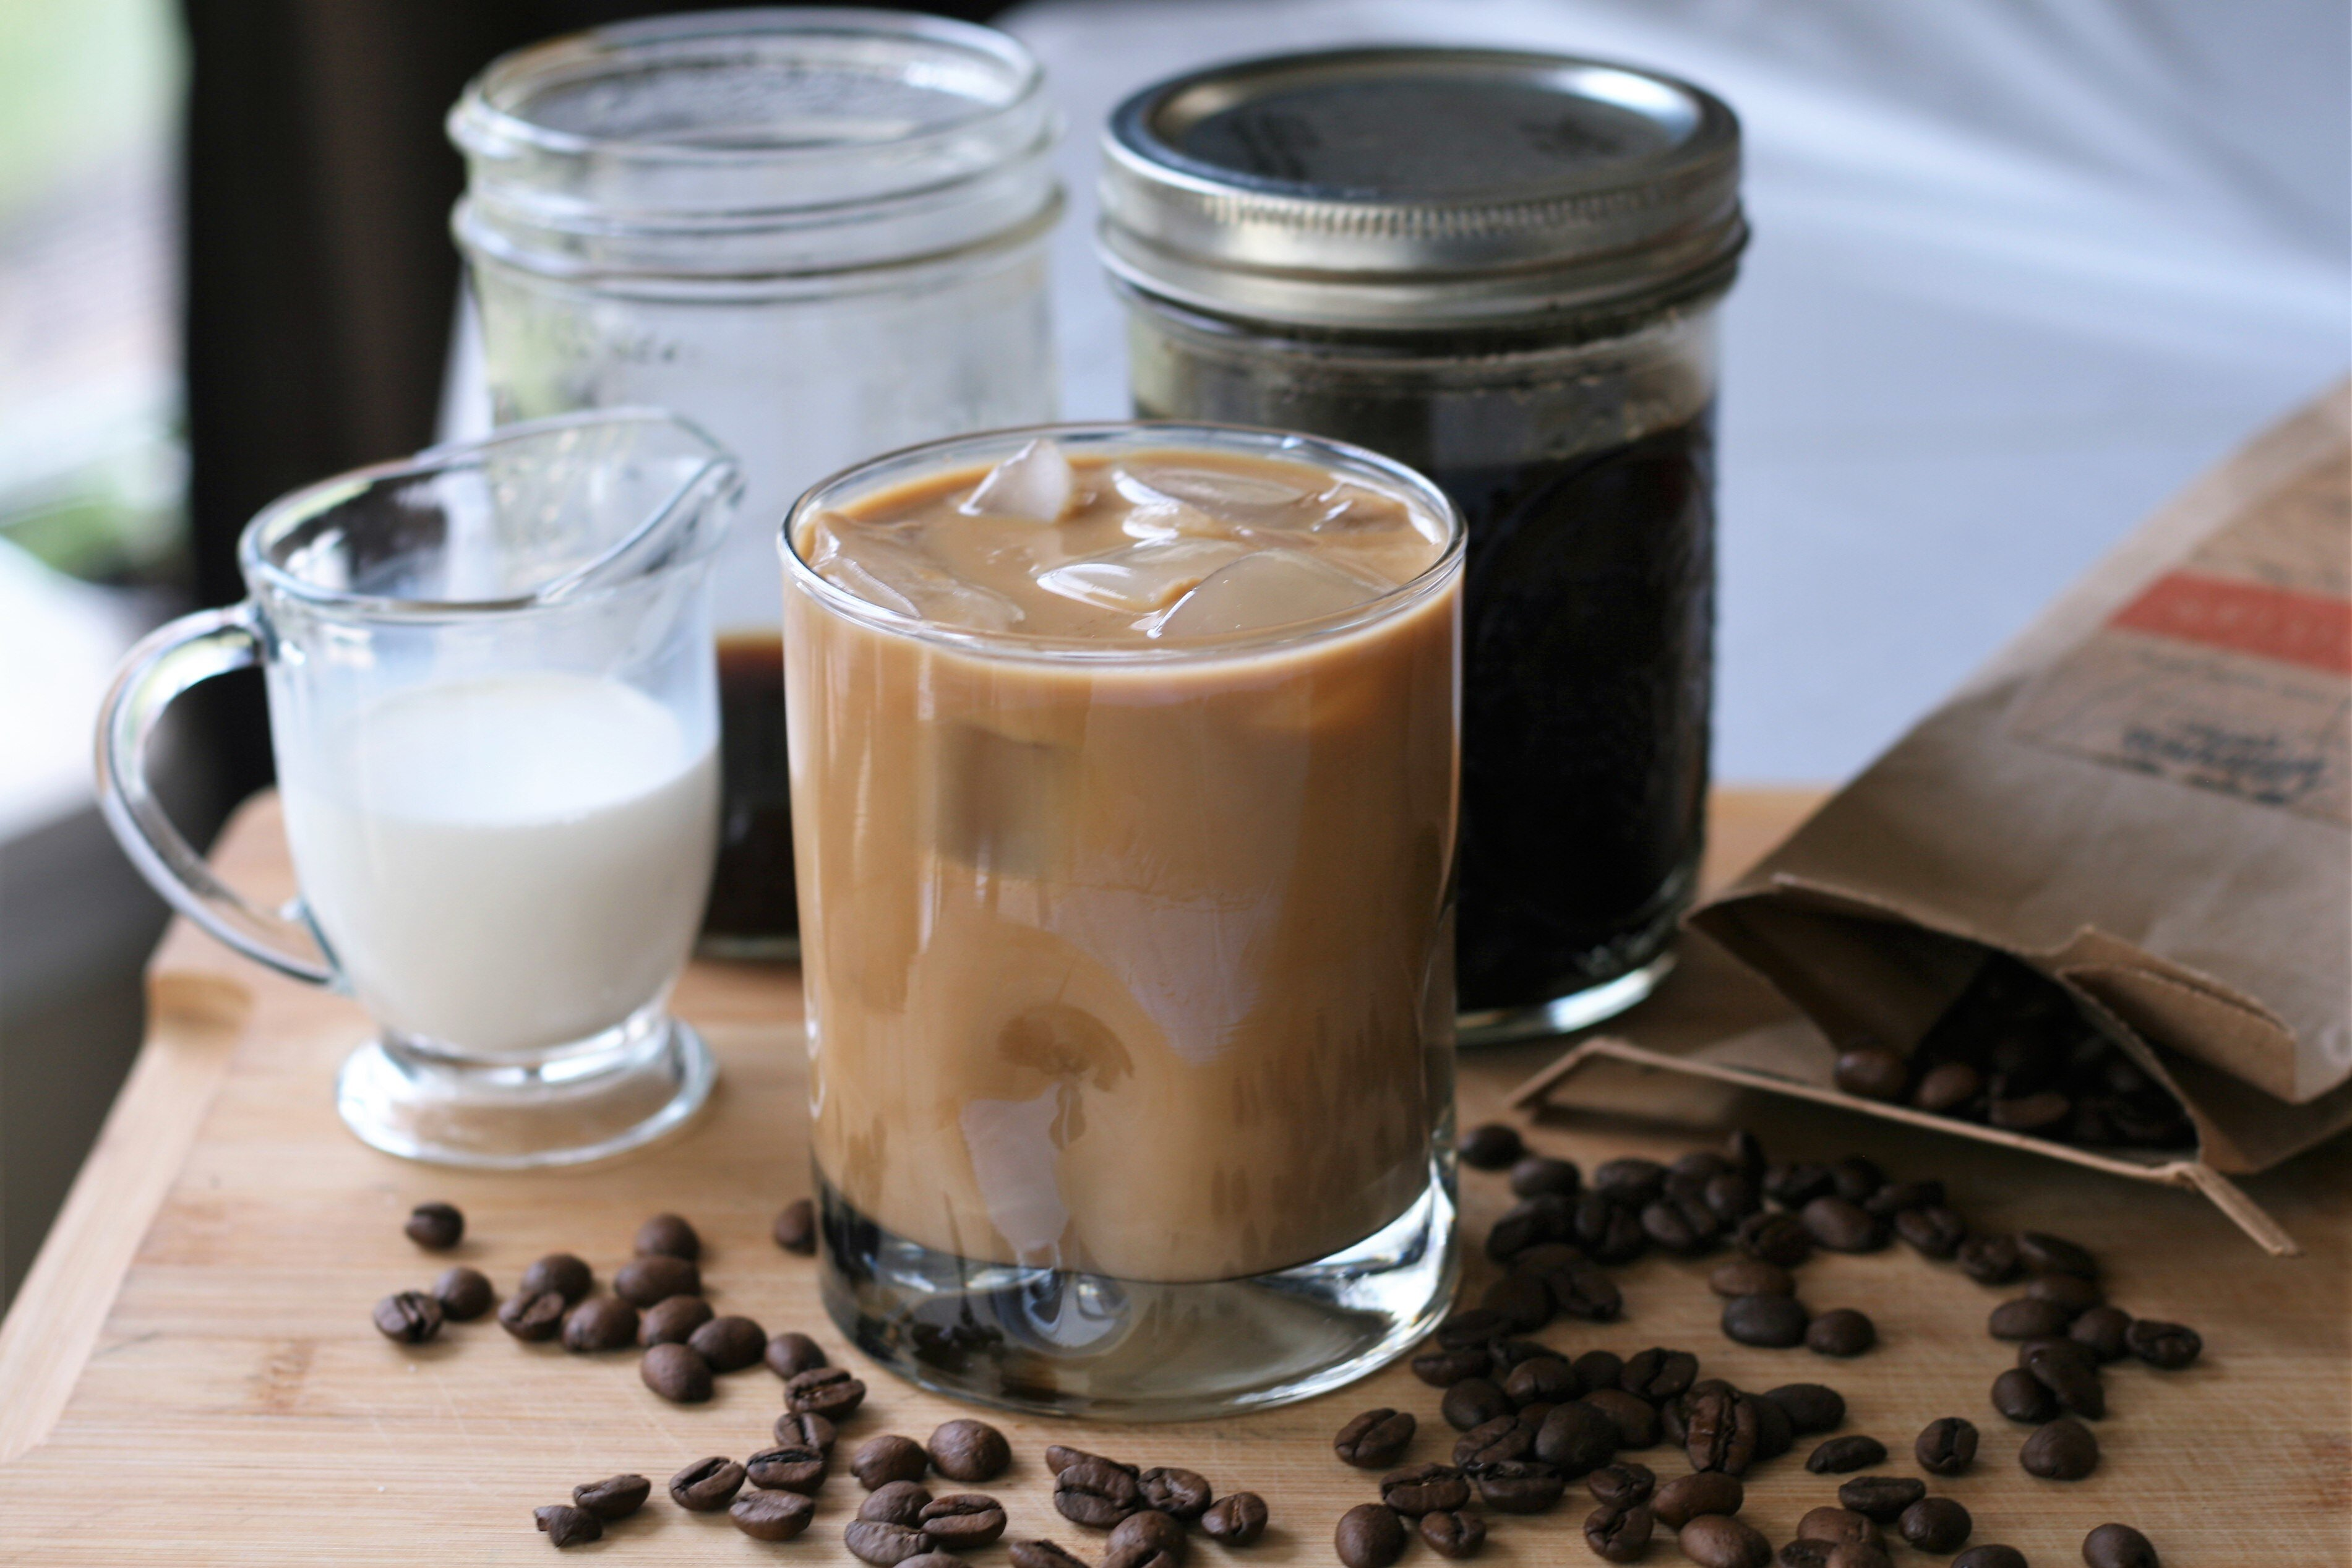 sous vide cold brew coffee